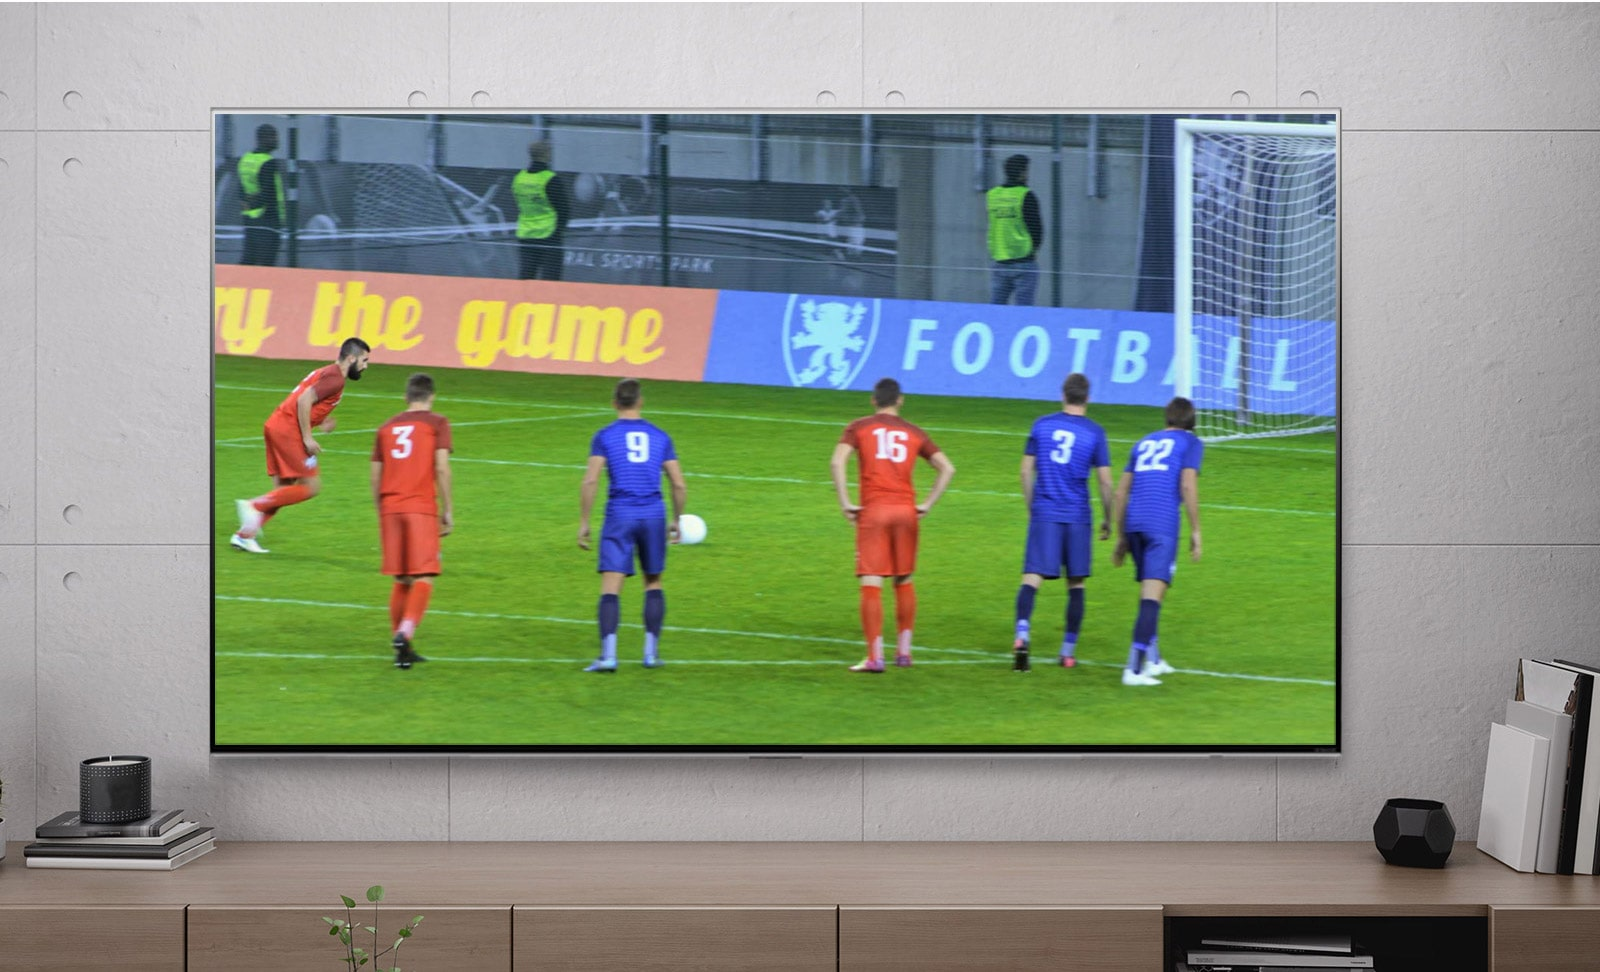 A TV screen showing a football player scoring a penalty (play the video).